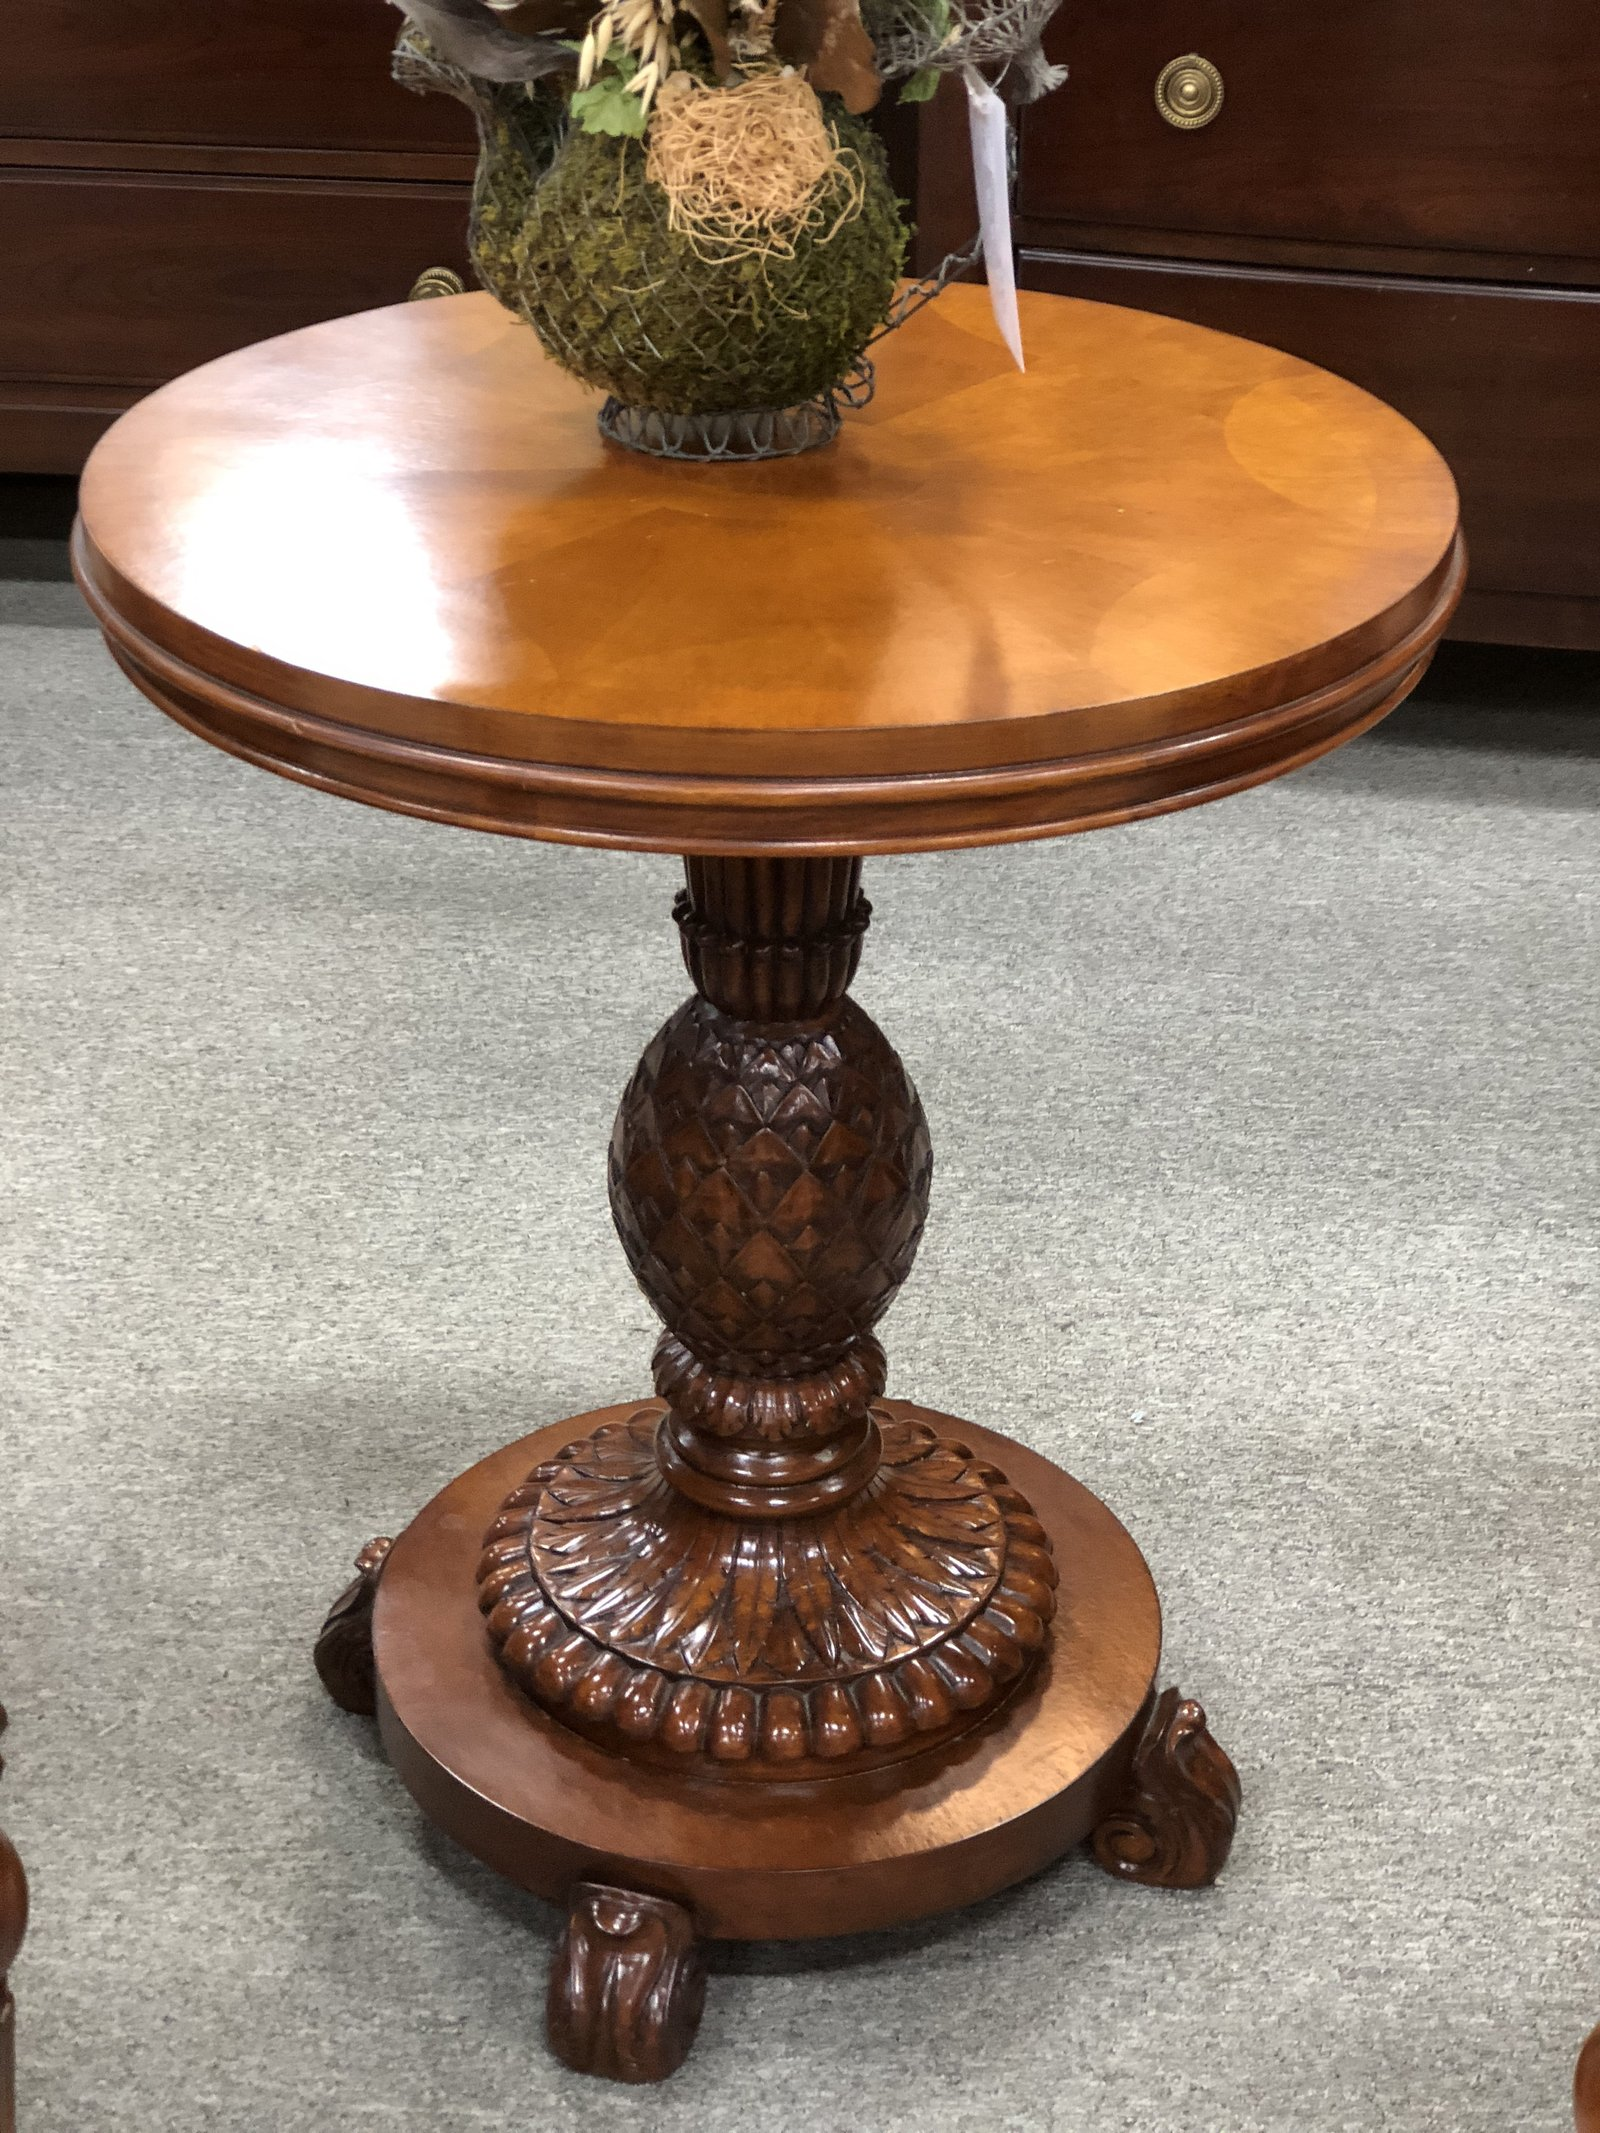 accent table petersons consigning design ethan allen pineapple outdoor metal bar ikea storage units with baskets glass nest tables snack patio furniture mississauga west elm